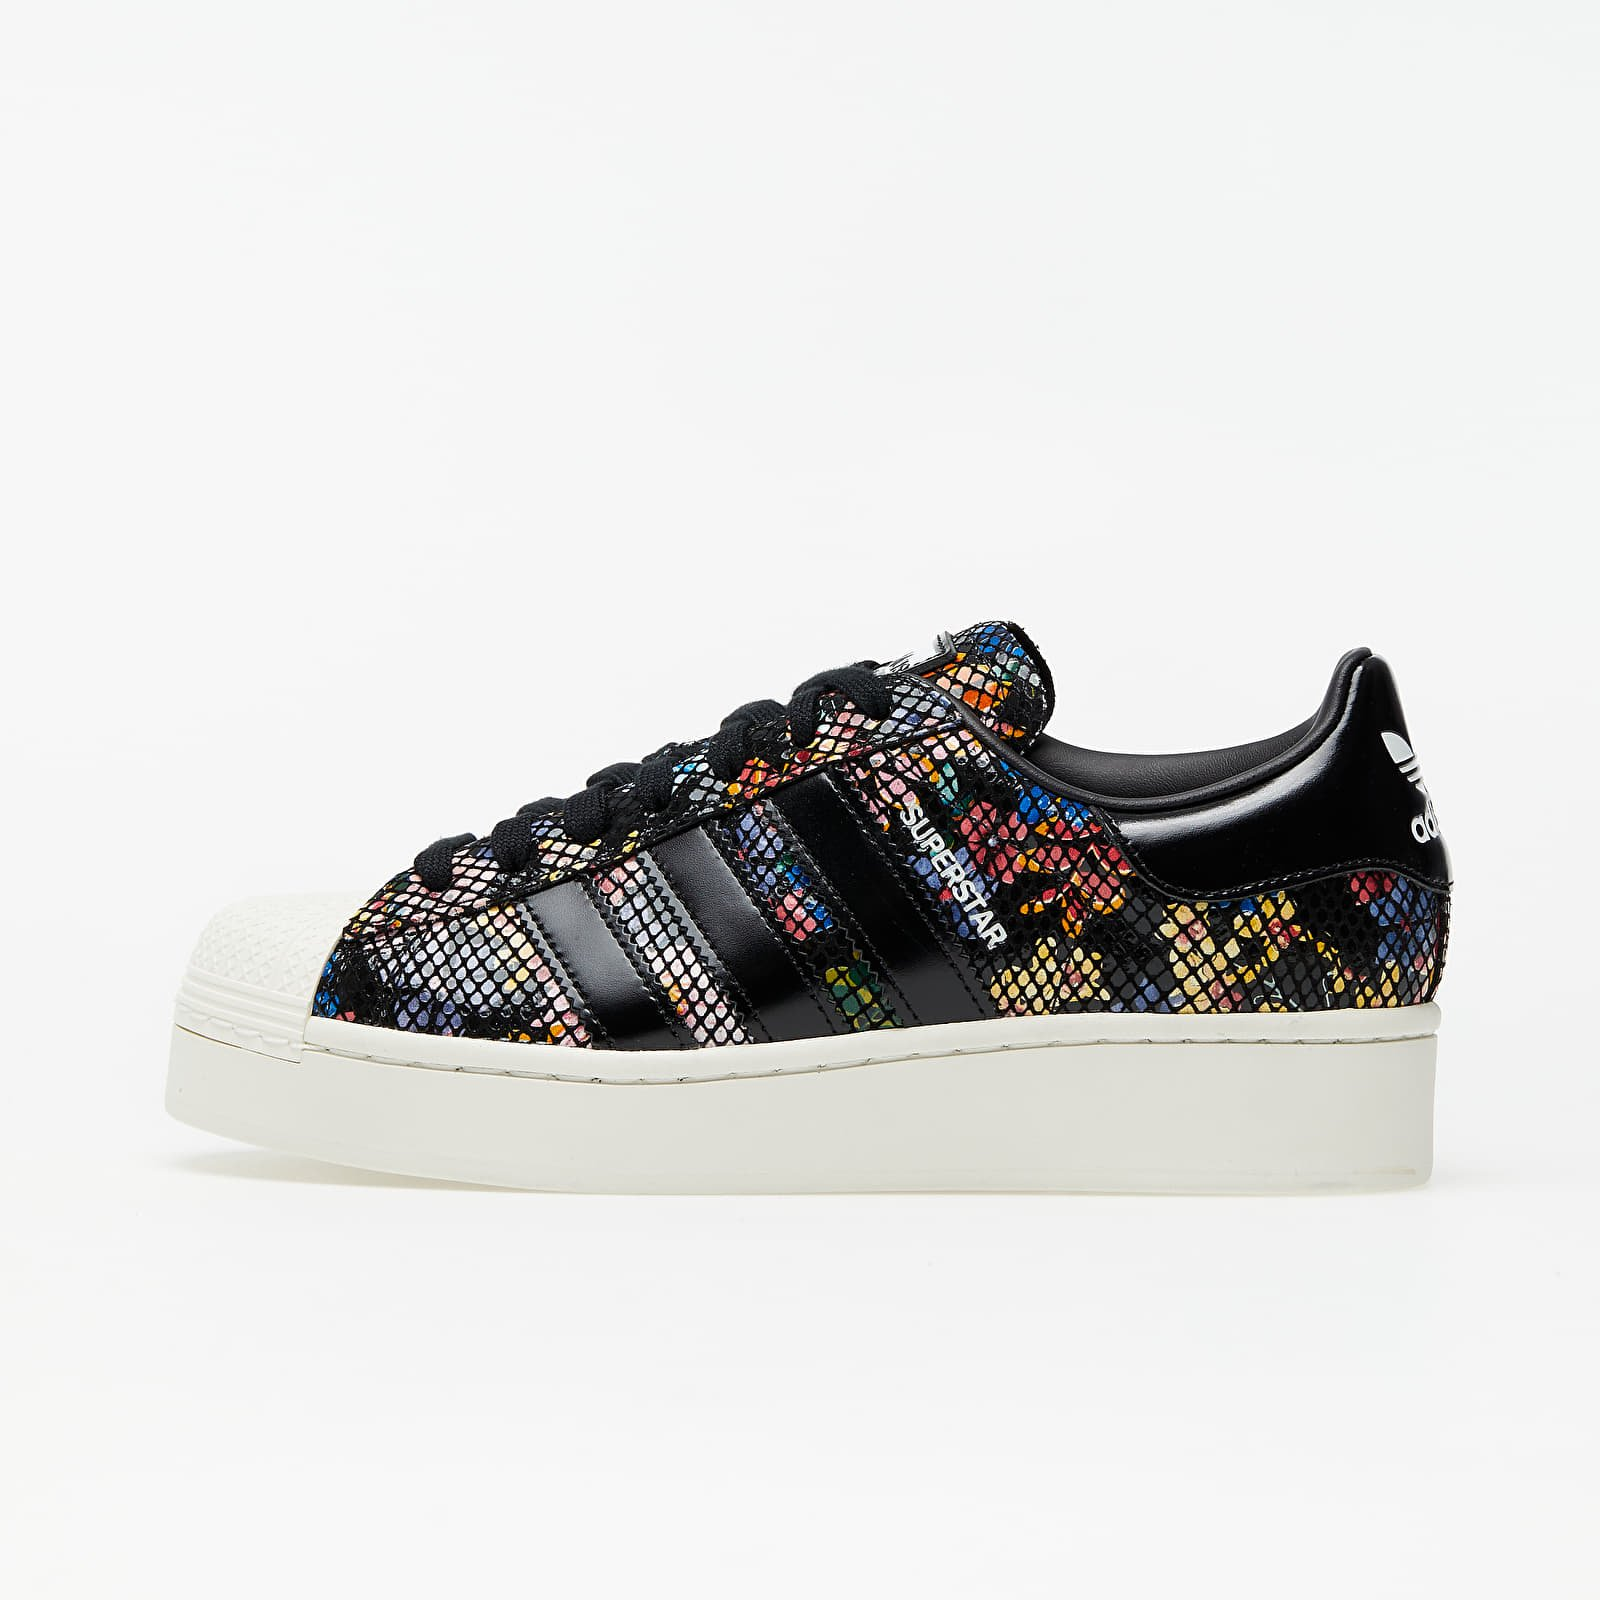 Buty damskie adidas Superstar Bold W Core Black/ Off White/ Red